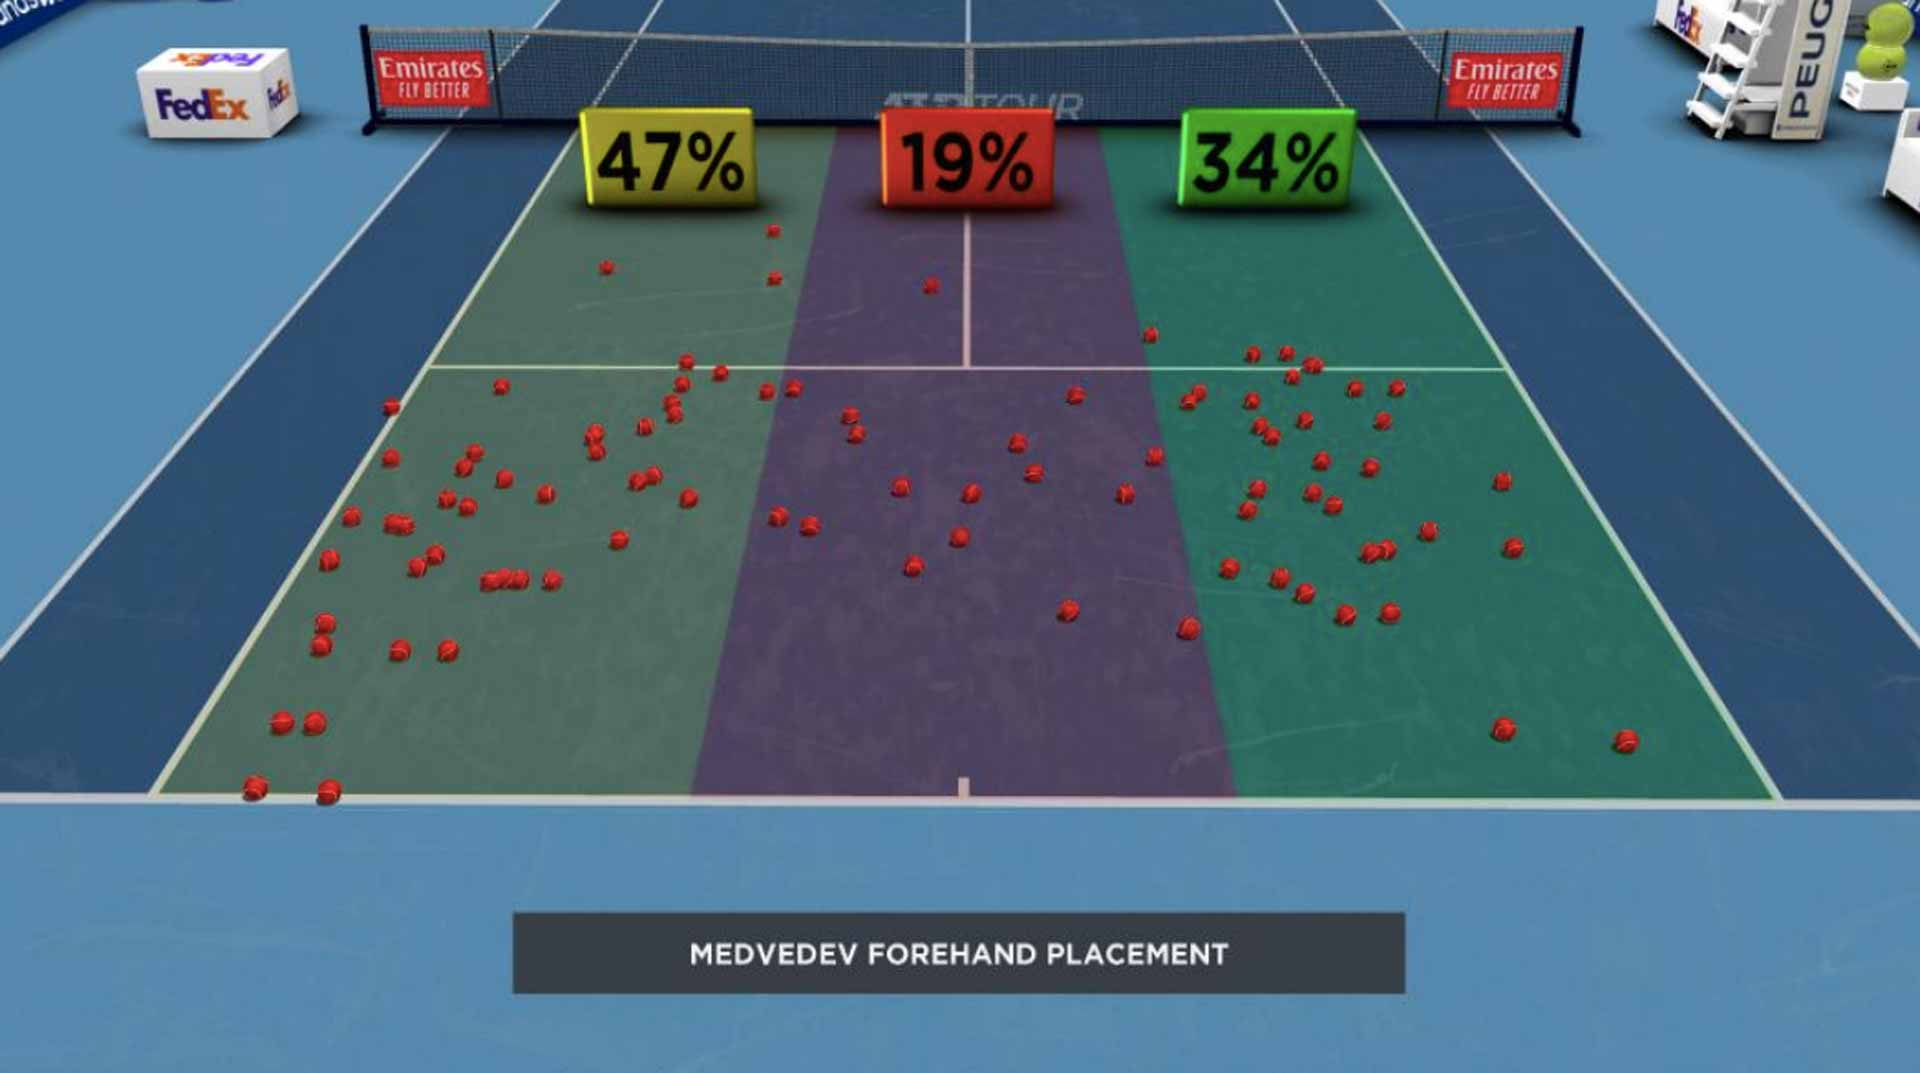 Medvedev Forehand Placement